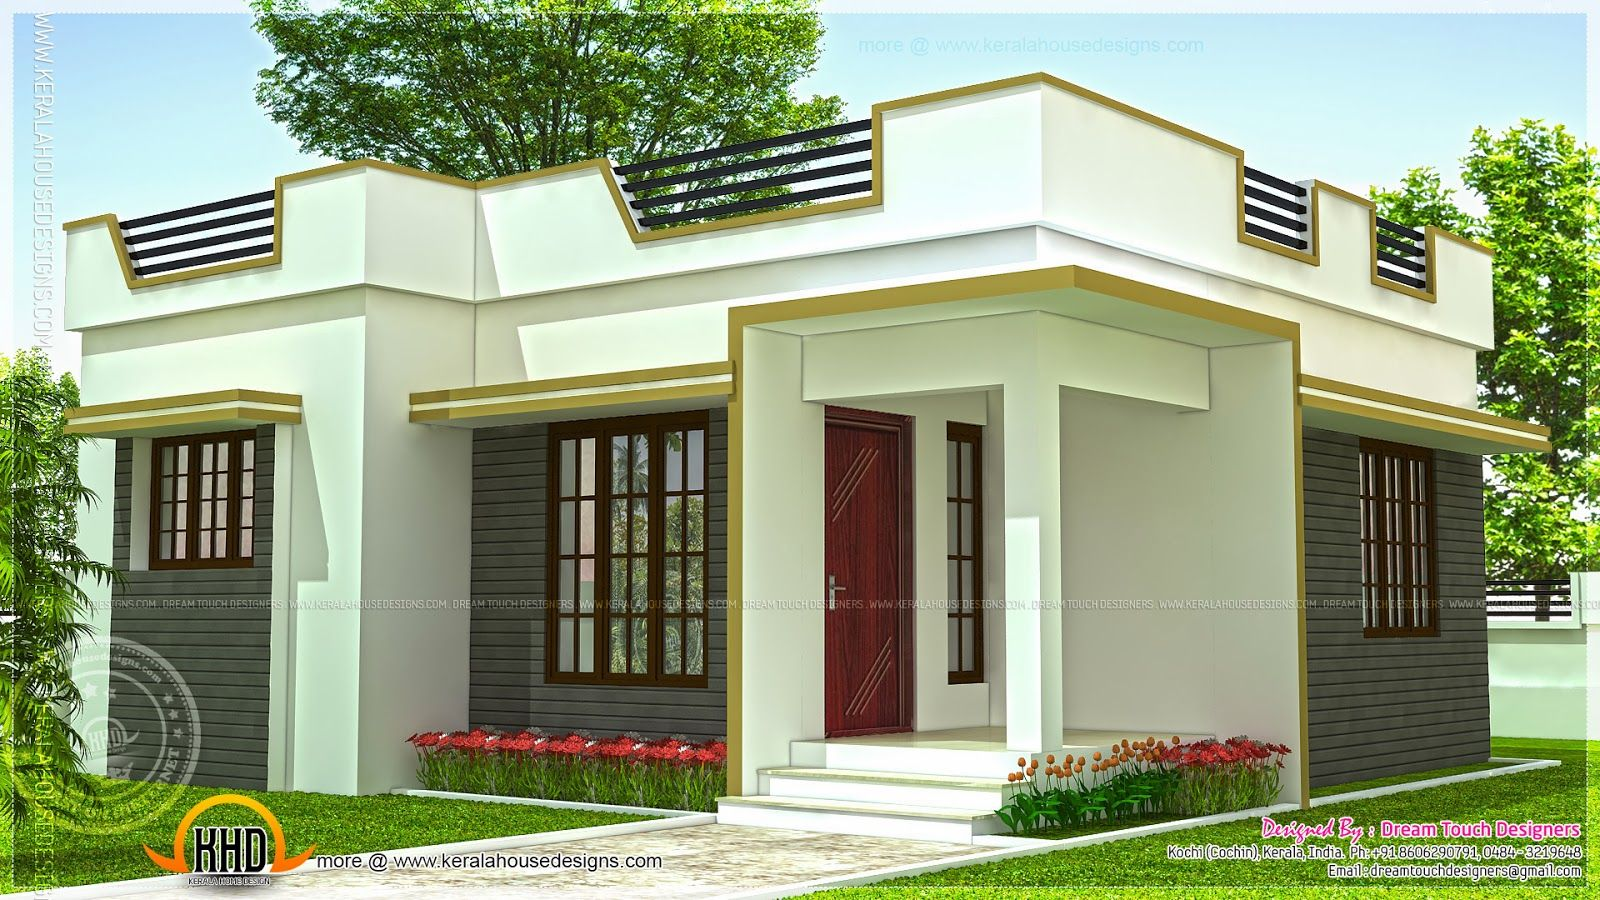 Lately 21 small house design kerala small house for Home designs kerala photos